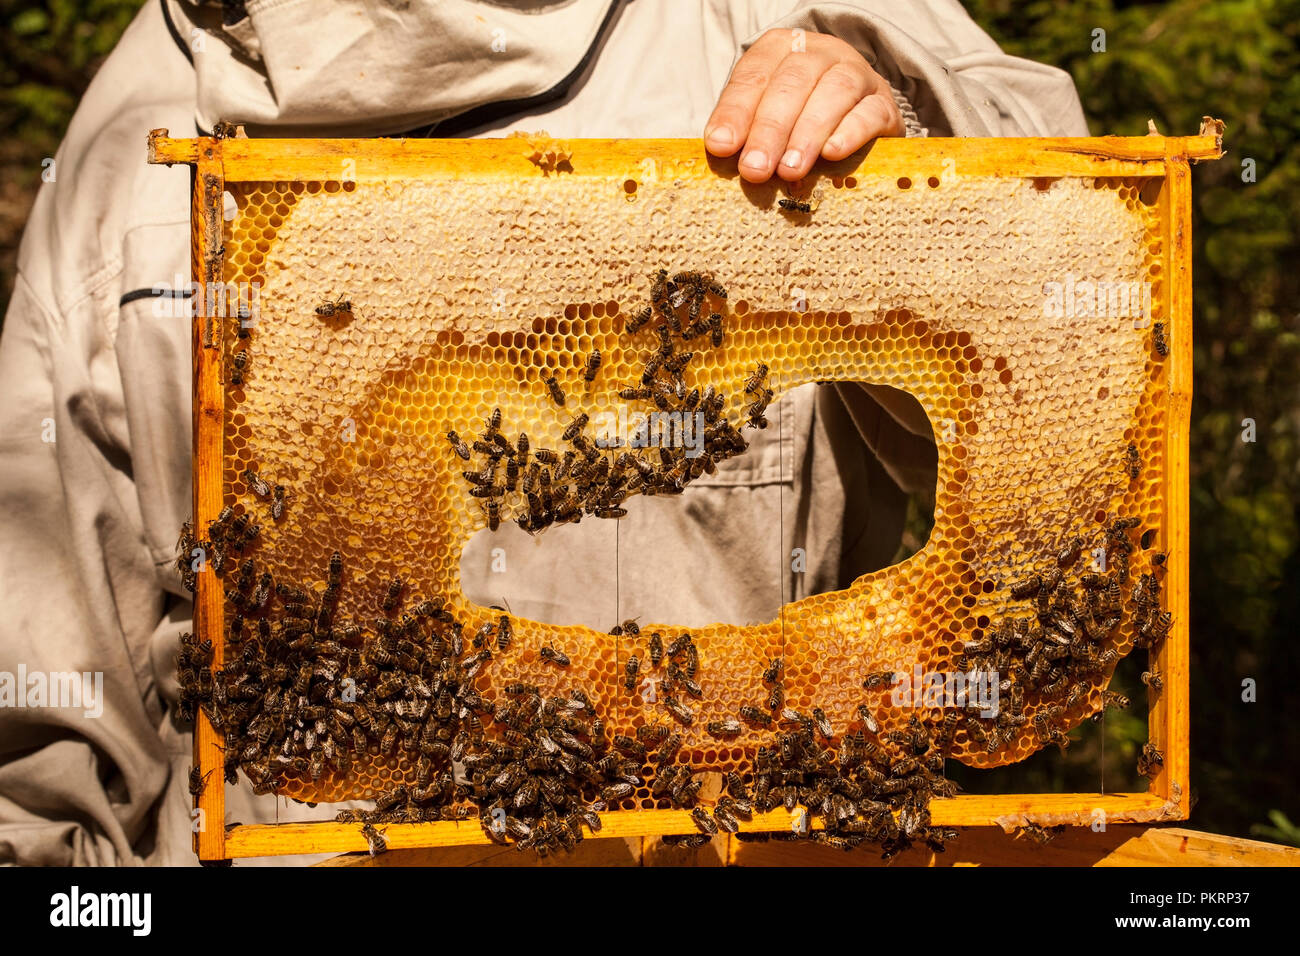 Beekeeper is working with bees and beehives on the apiary. - Stock Image